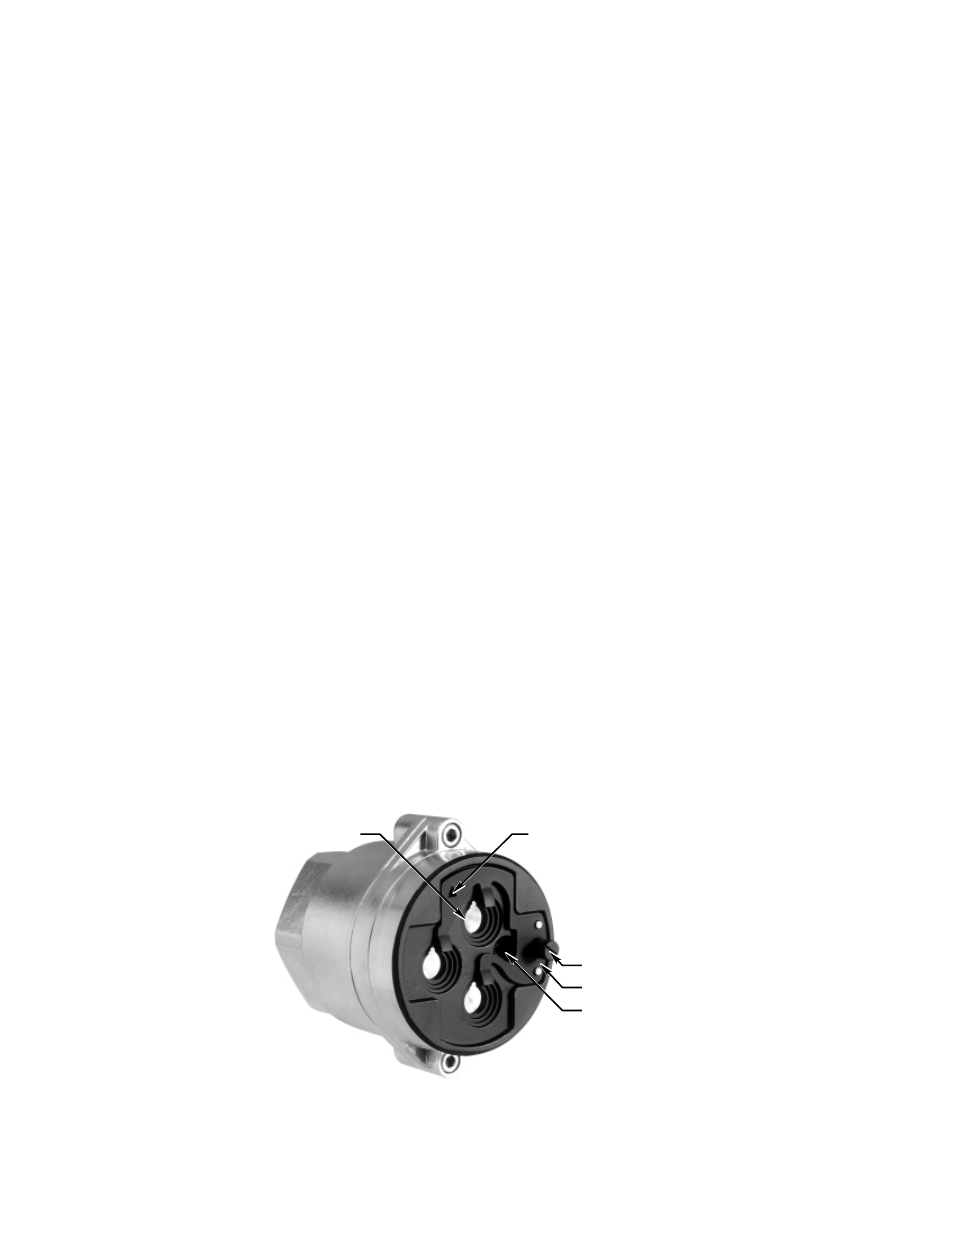 medium resolution of mounting and wiring procedure det tronics x3300 protect ir multispectrum ir flame detector with pulse output user manual page 6 27